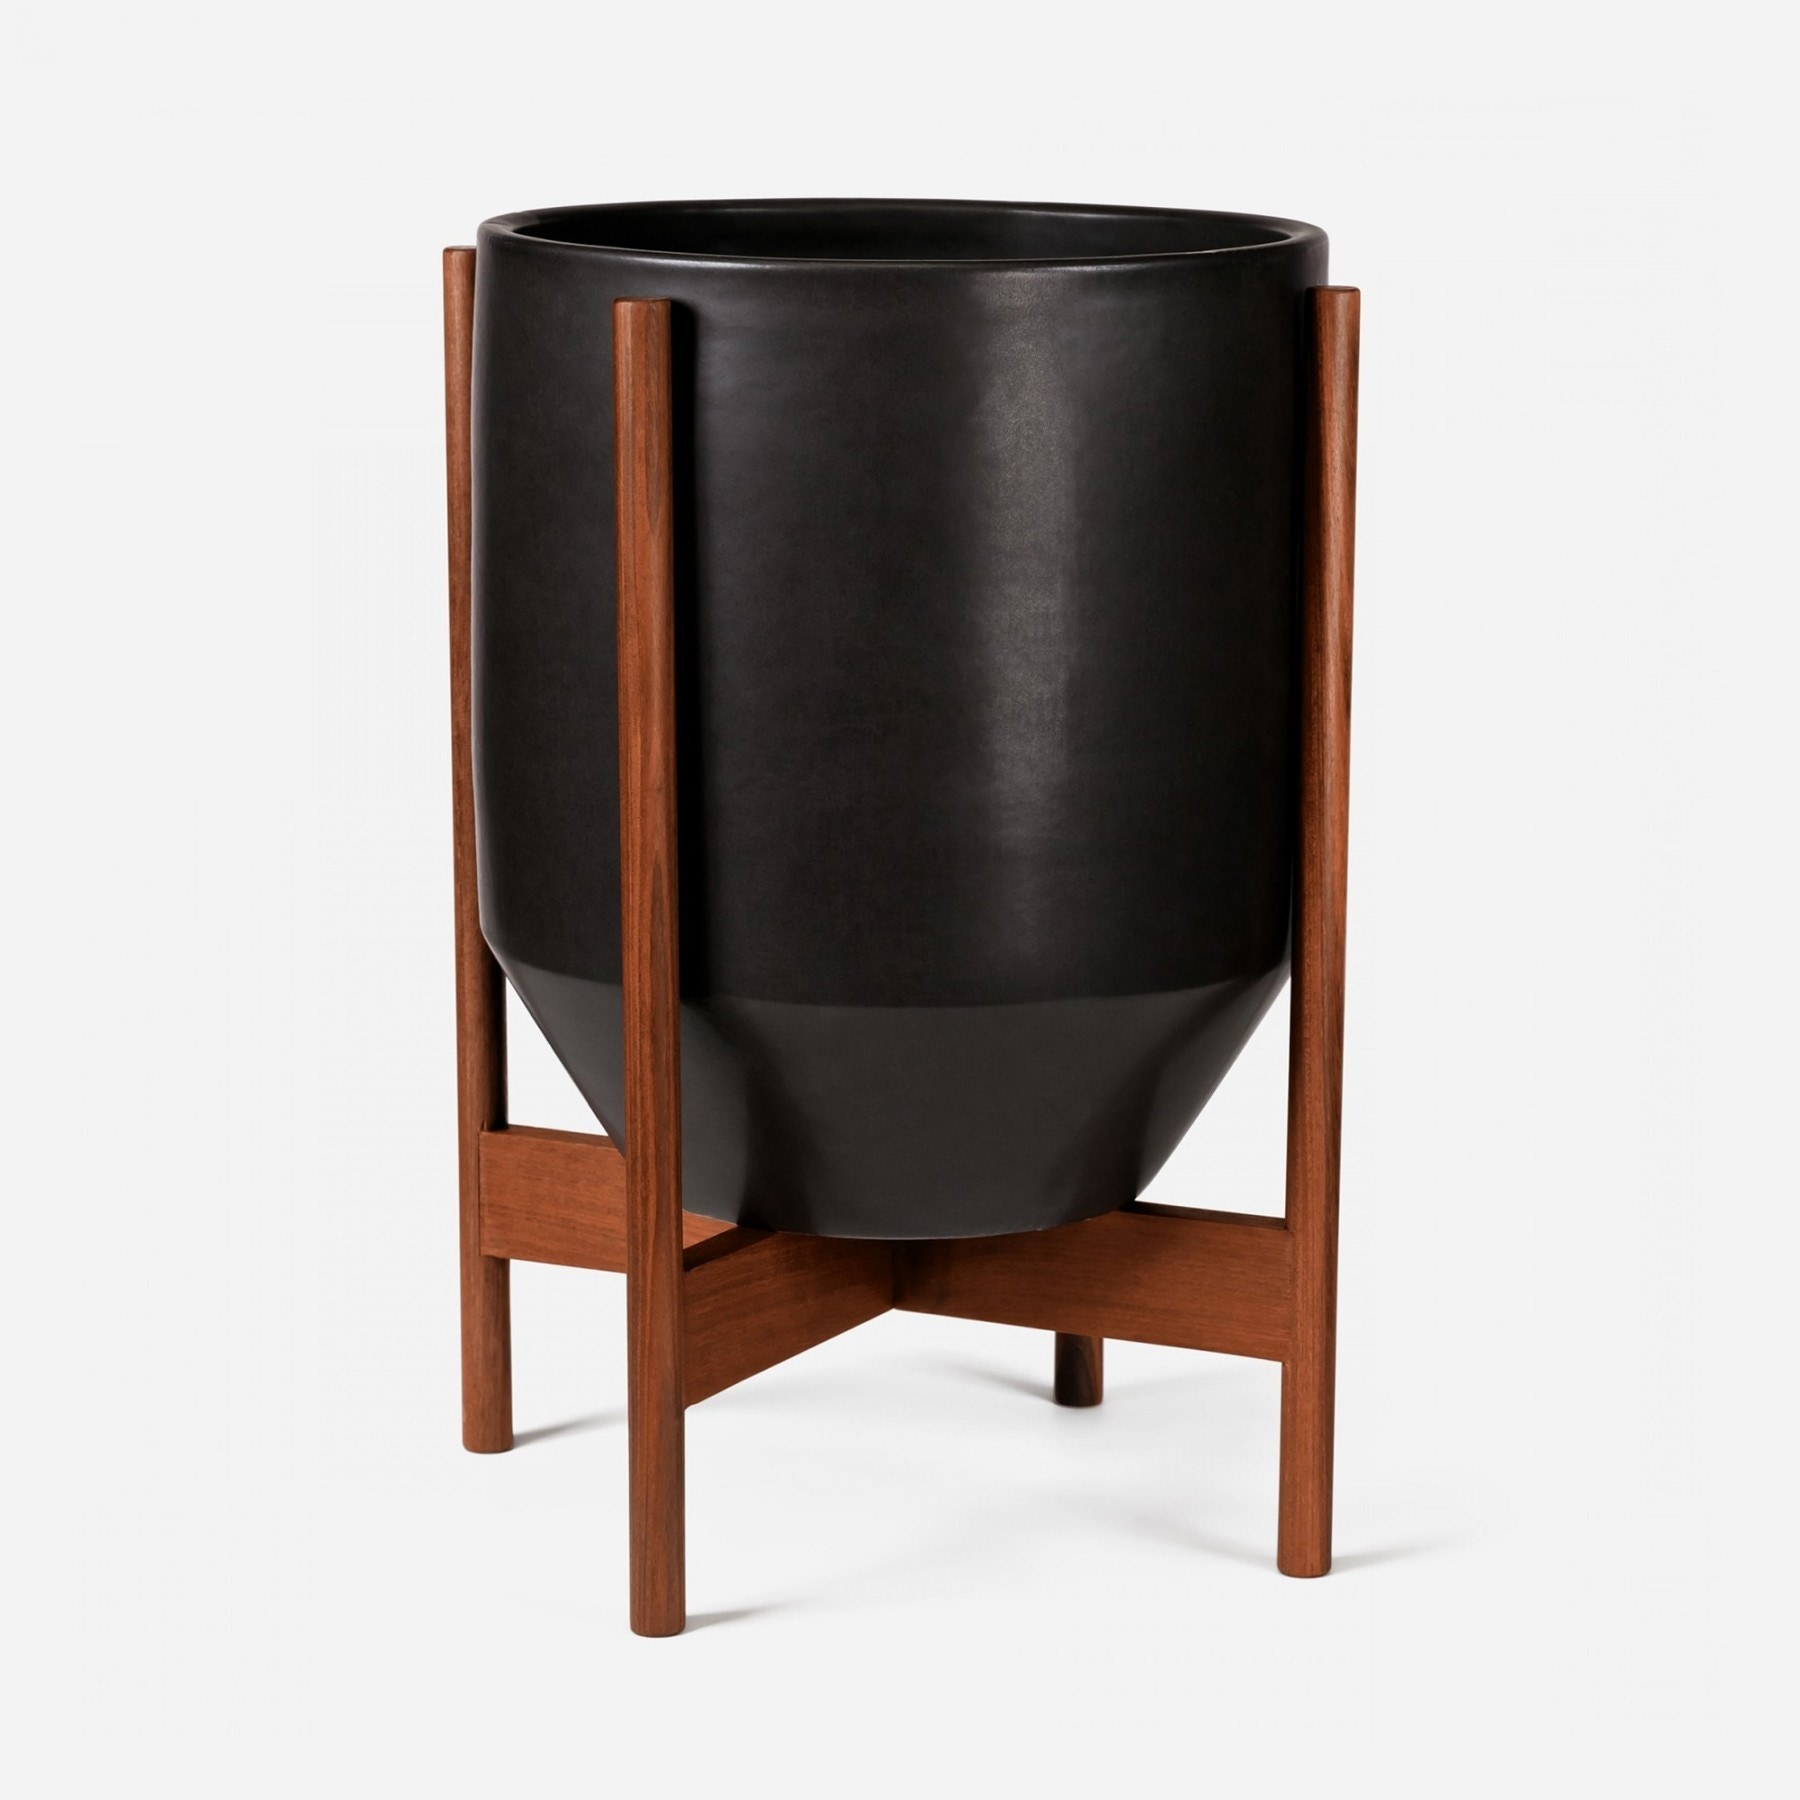 Modernica Case Study® Ceramics Large Hex With Stand (Planter)